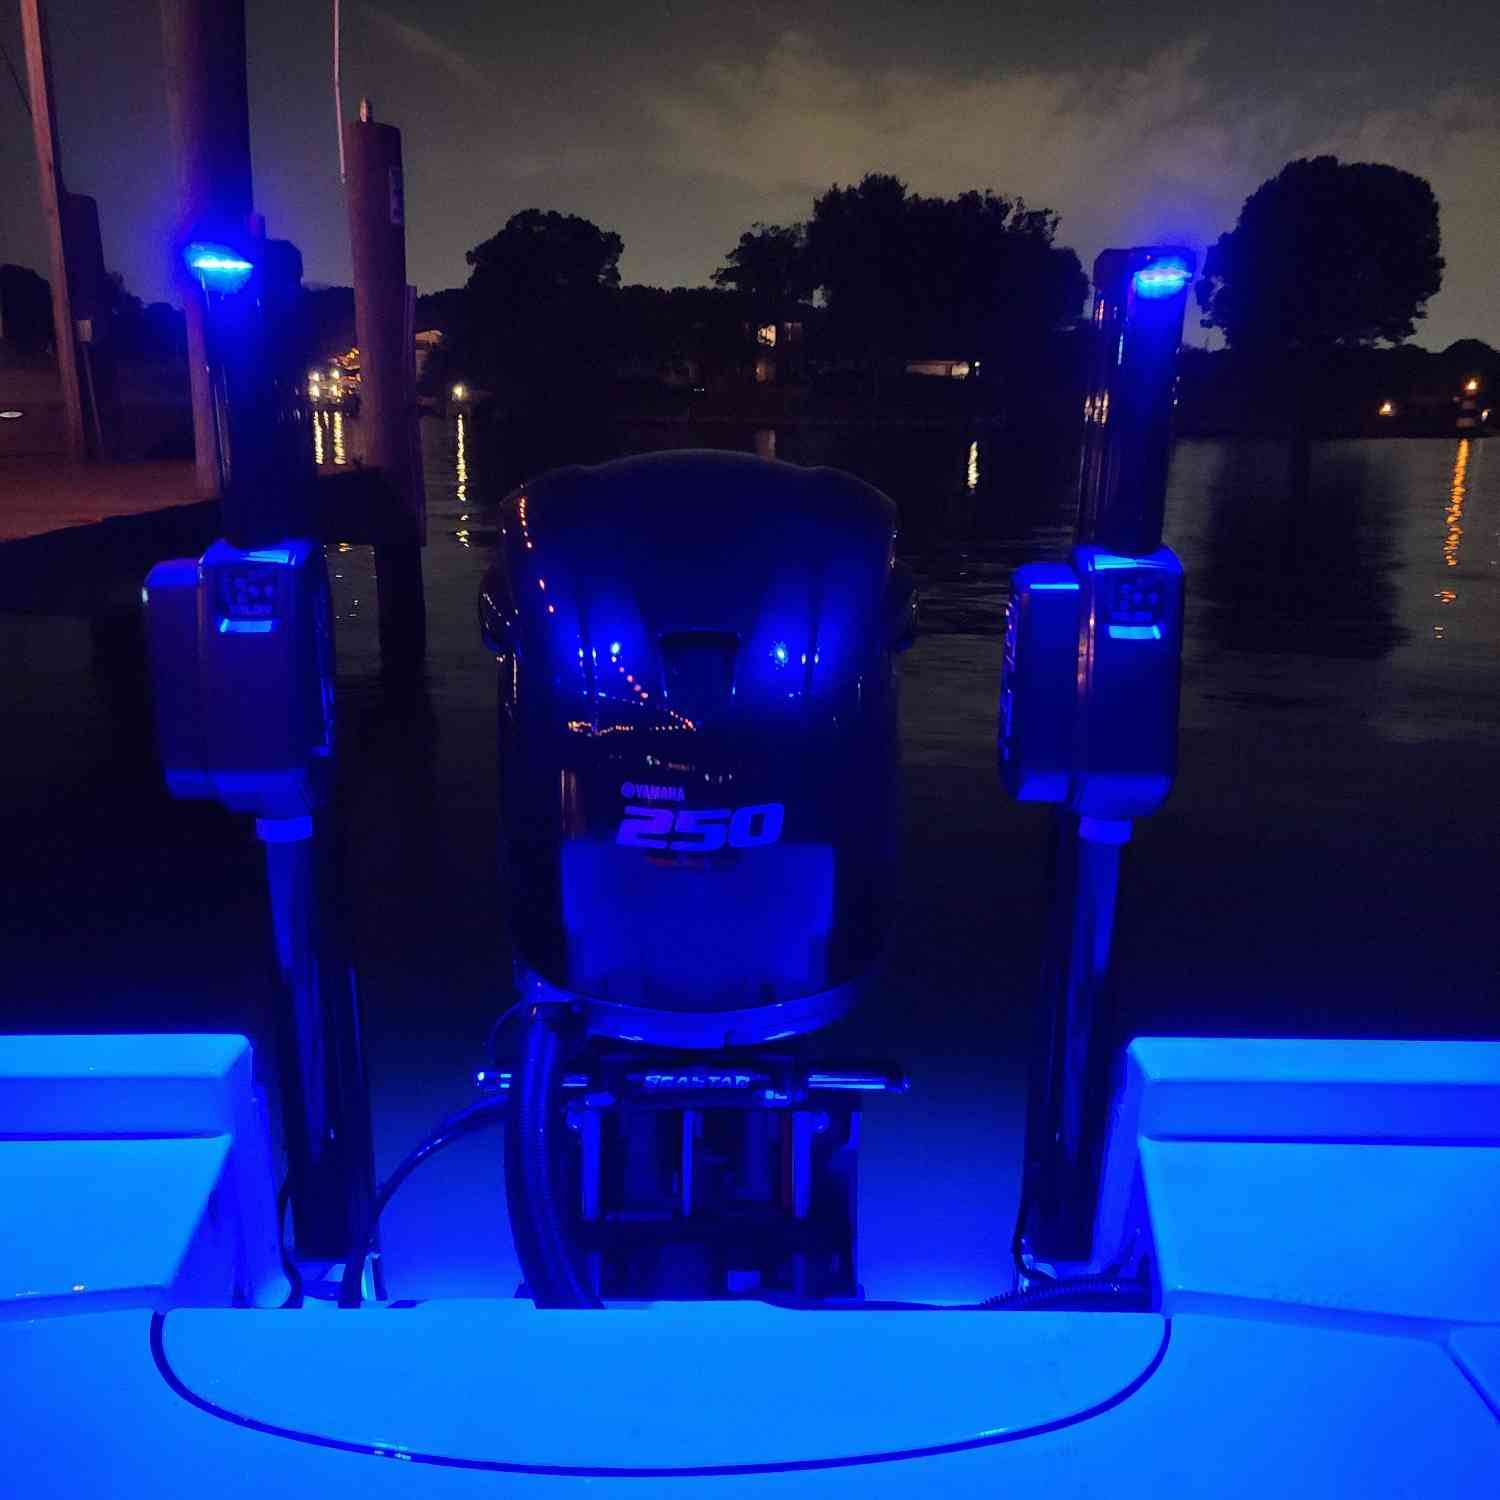 Title: All lit up at the dock bar - On board their Sportsman Masters 227 Bay Boat - Location: middle river md. Participating in the Photo Contest #SportsmanAugust2020